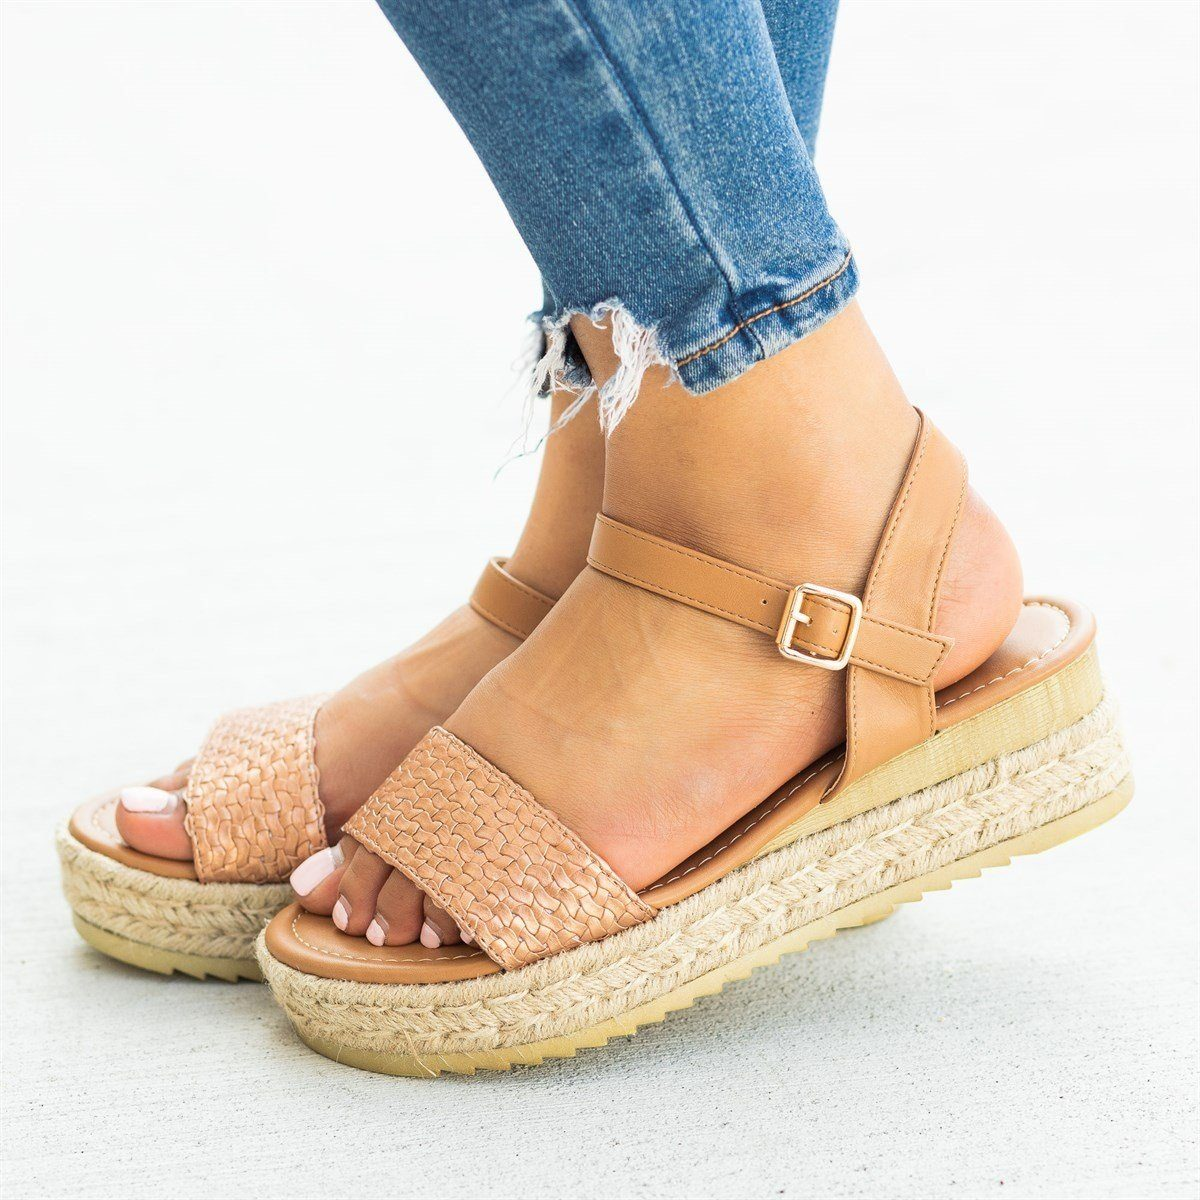 Details about  /Bass Womens Nettie Leather Ankle Strap Espadrille Wedge Sandal Ecru 7.5-8.5 10